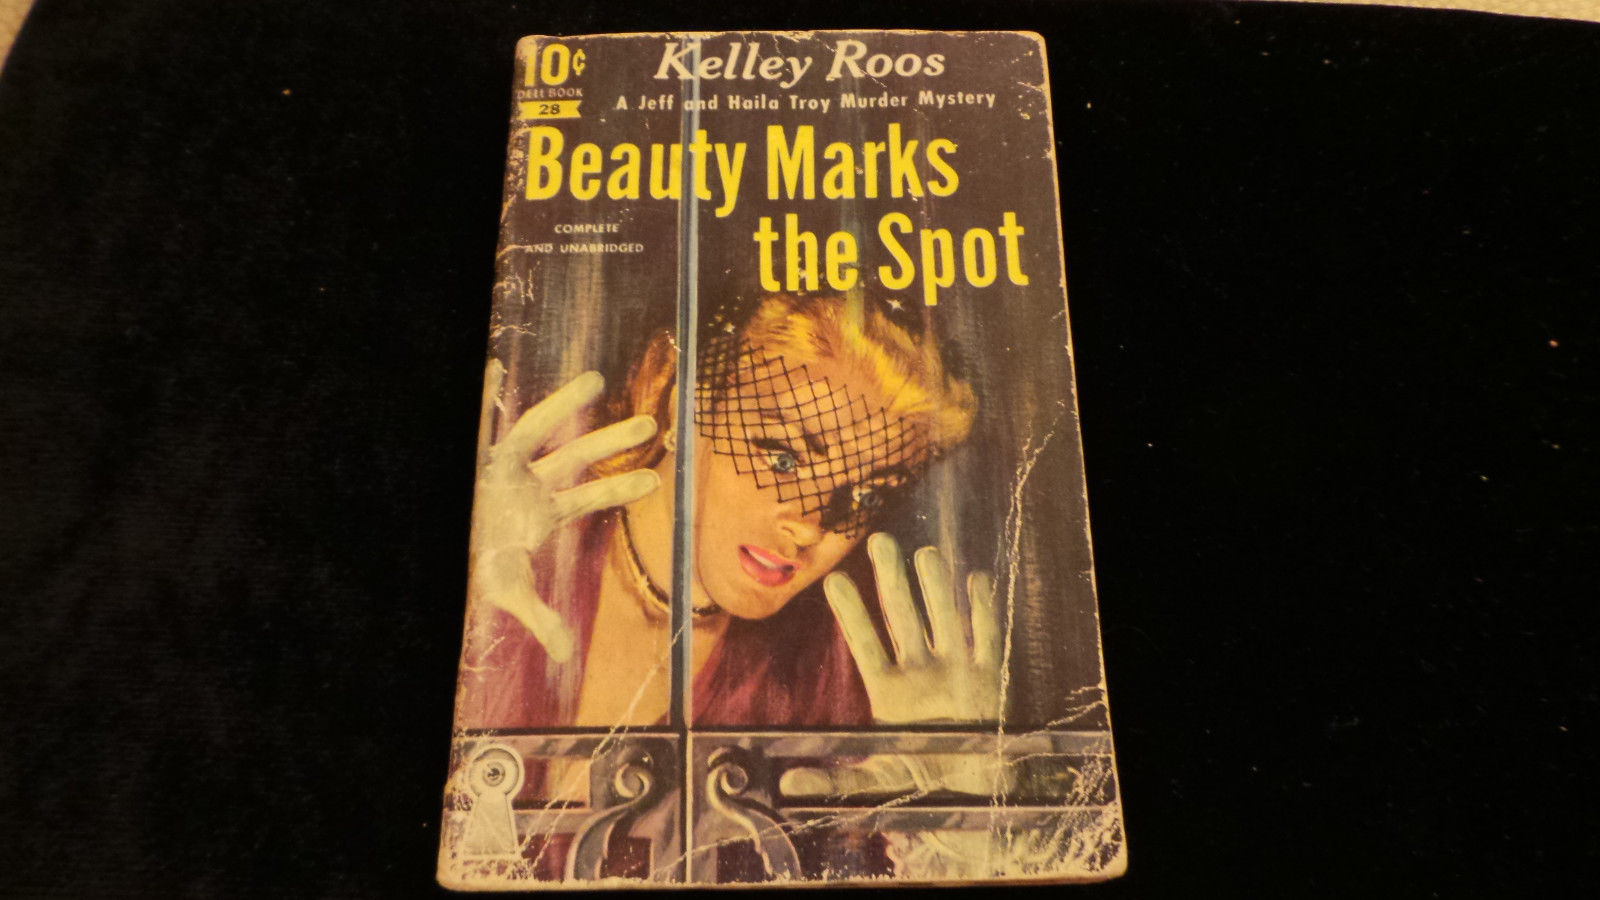 Vintage PB Beauty Marks the Spot Kelley Roos Dell 10 cent # 28 Desoto cvr art VG